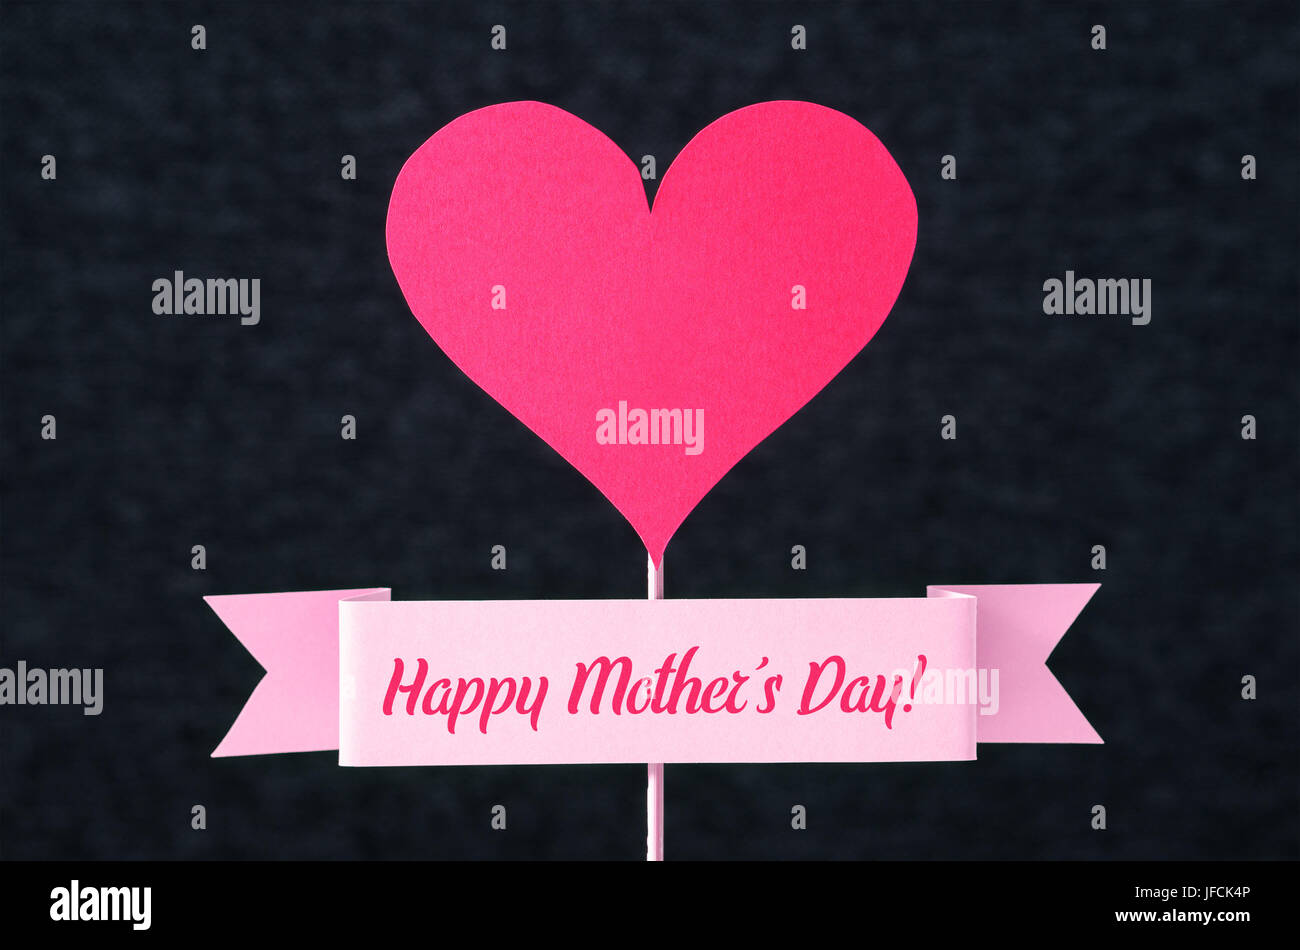 Happy mothers day text on a ribbon and red heart shape cut from happy mothers day text on a ribbon and red heart shape cut from cardboard on wooden stick nice simple greeting design for mothers day card kristyandbryce Choice Image